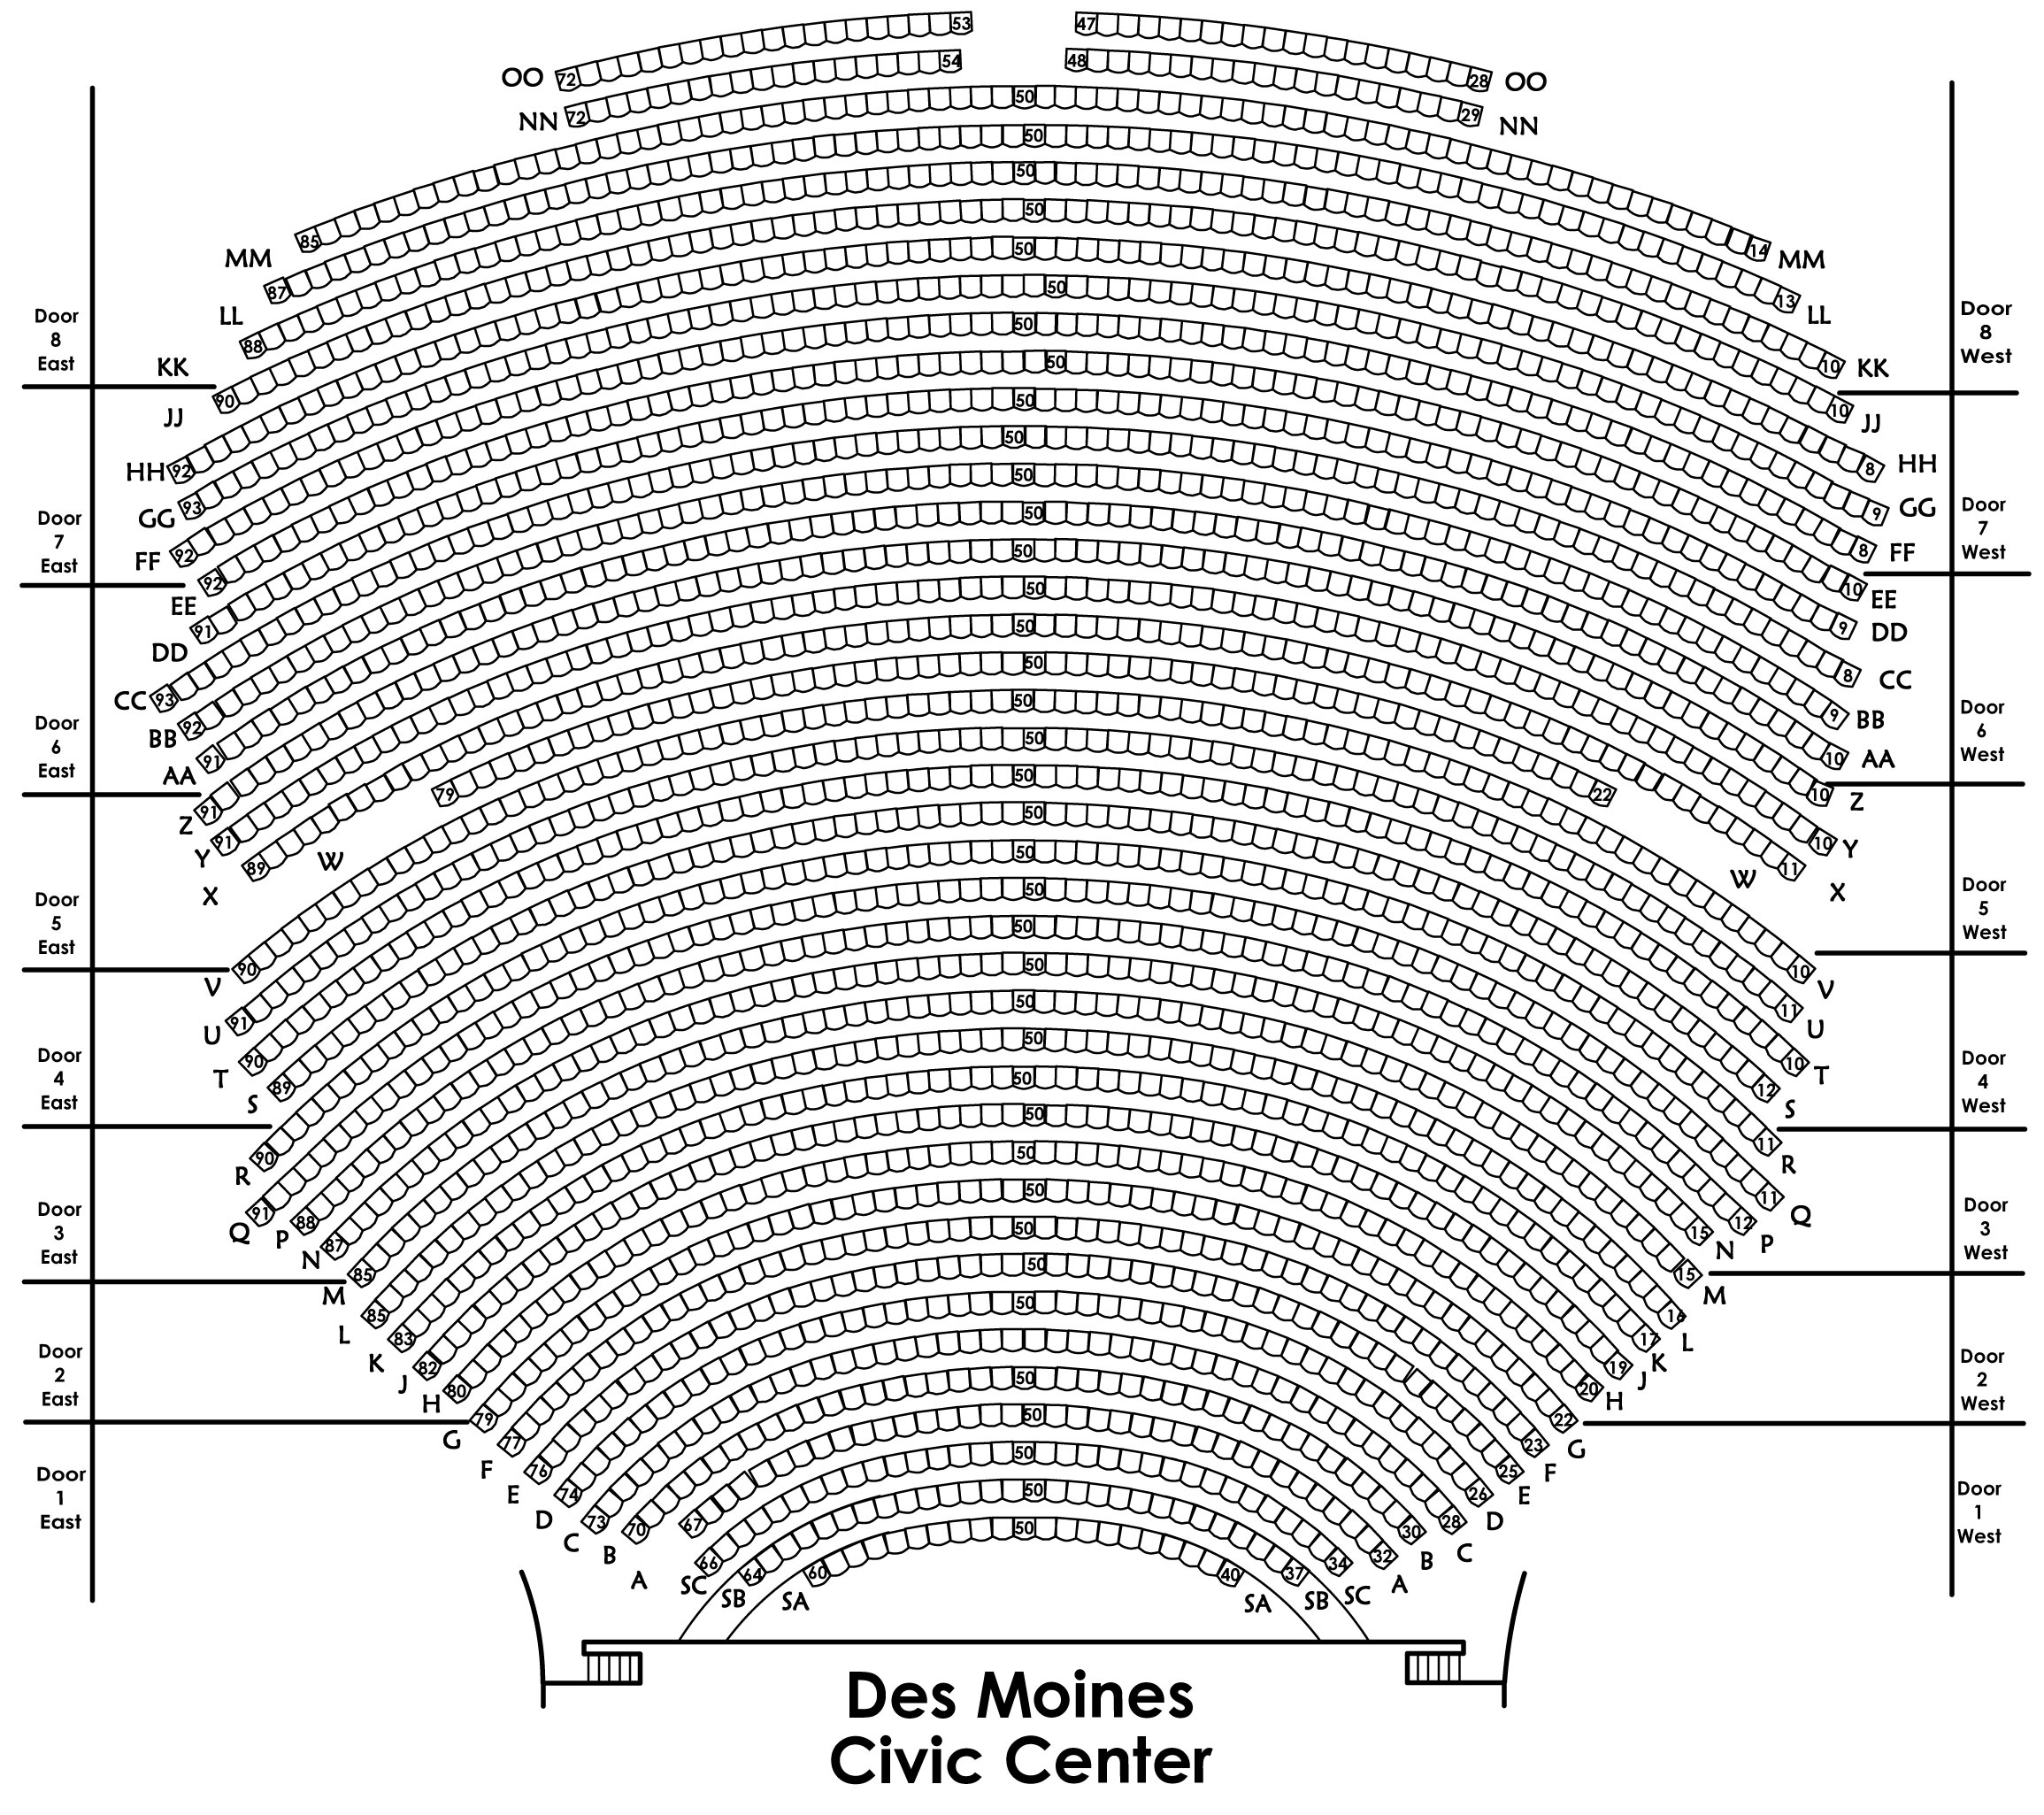 Seating Charts - Des Moines Performing Arts